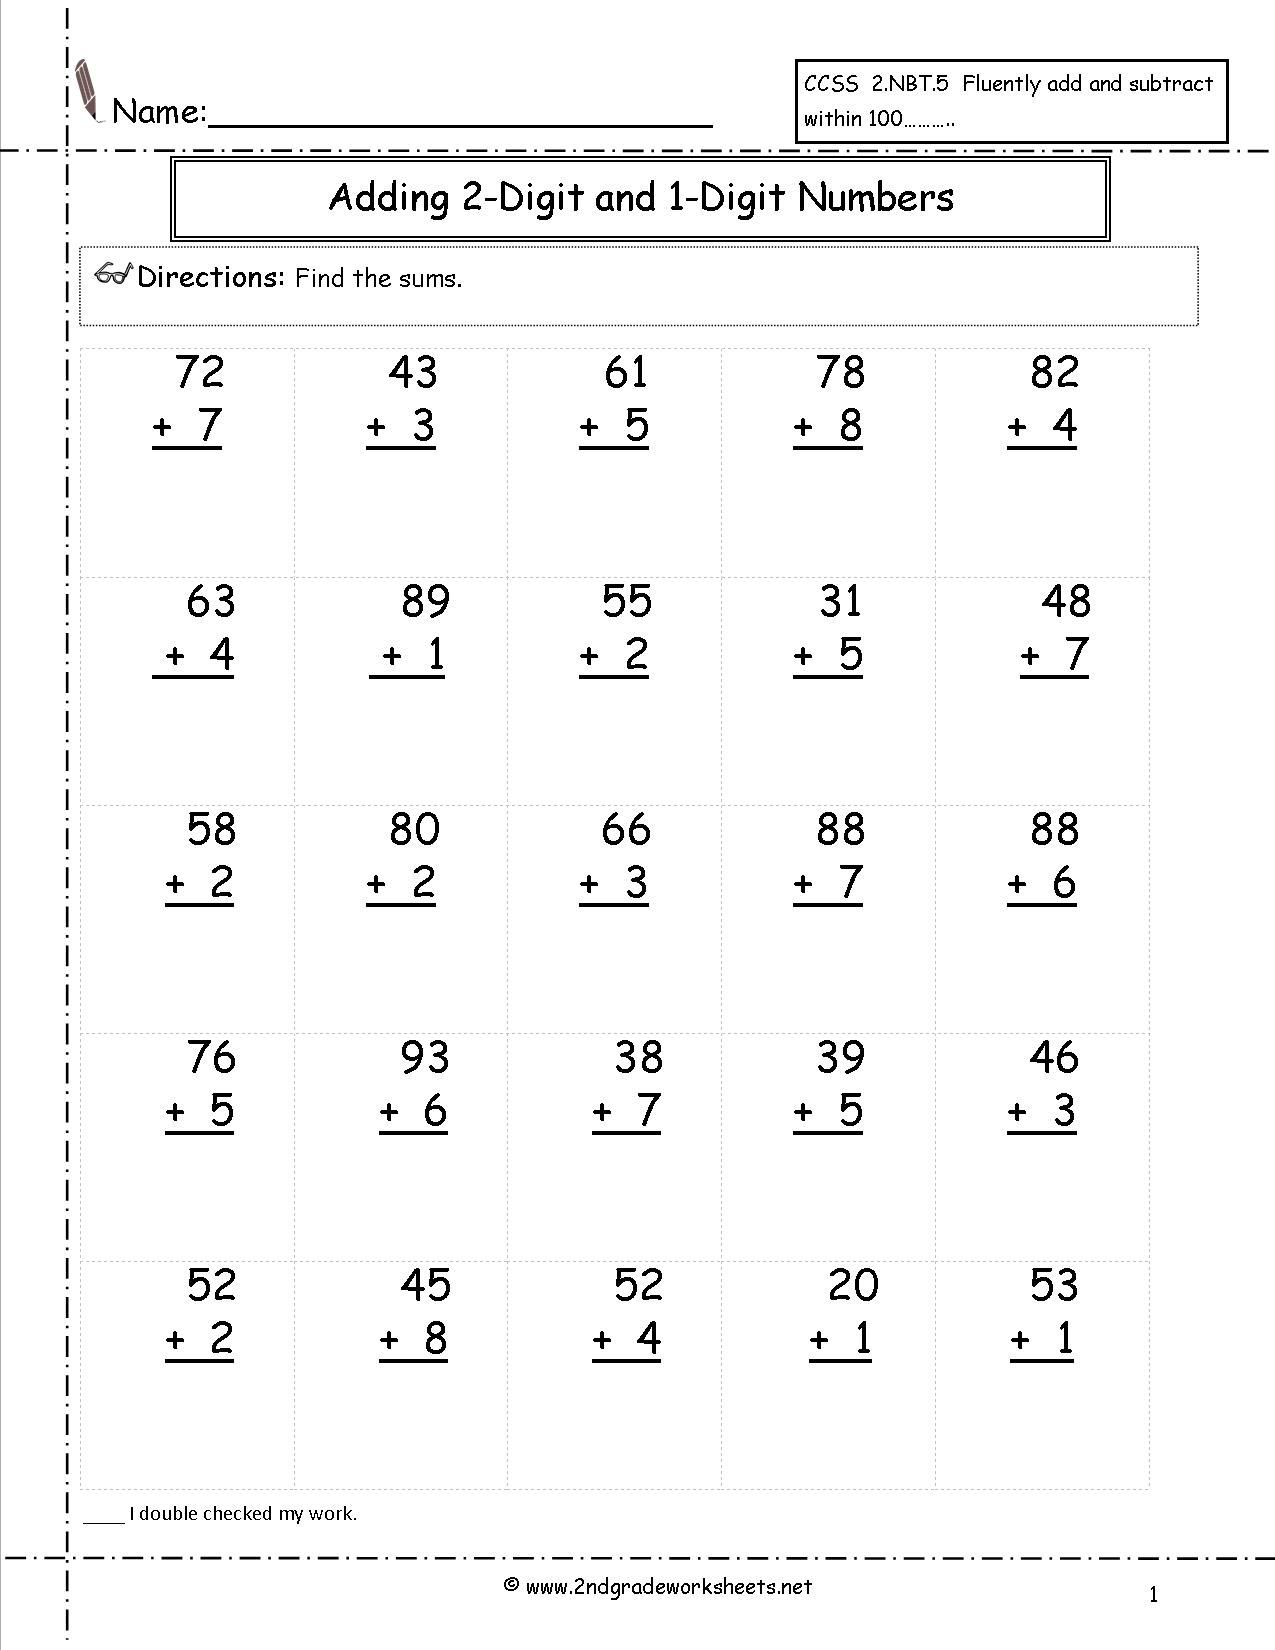 Adding Two Digit And One Digit Numbers | Satta | Addition Worksheets | Free Printable Two Digit Addition Worksheets